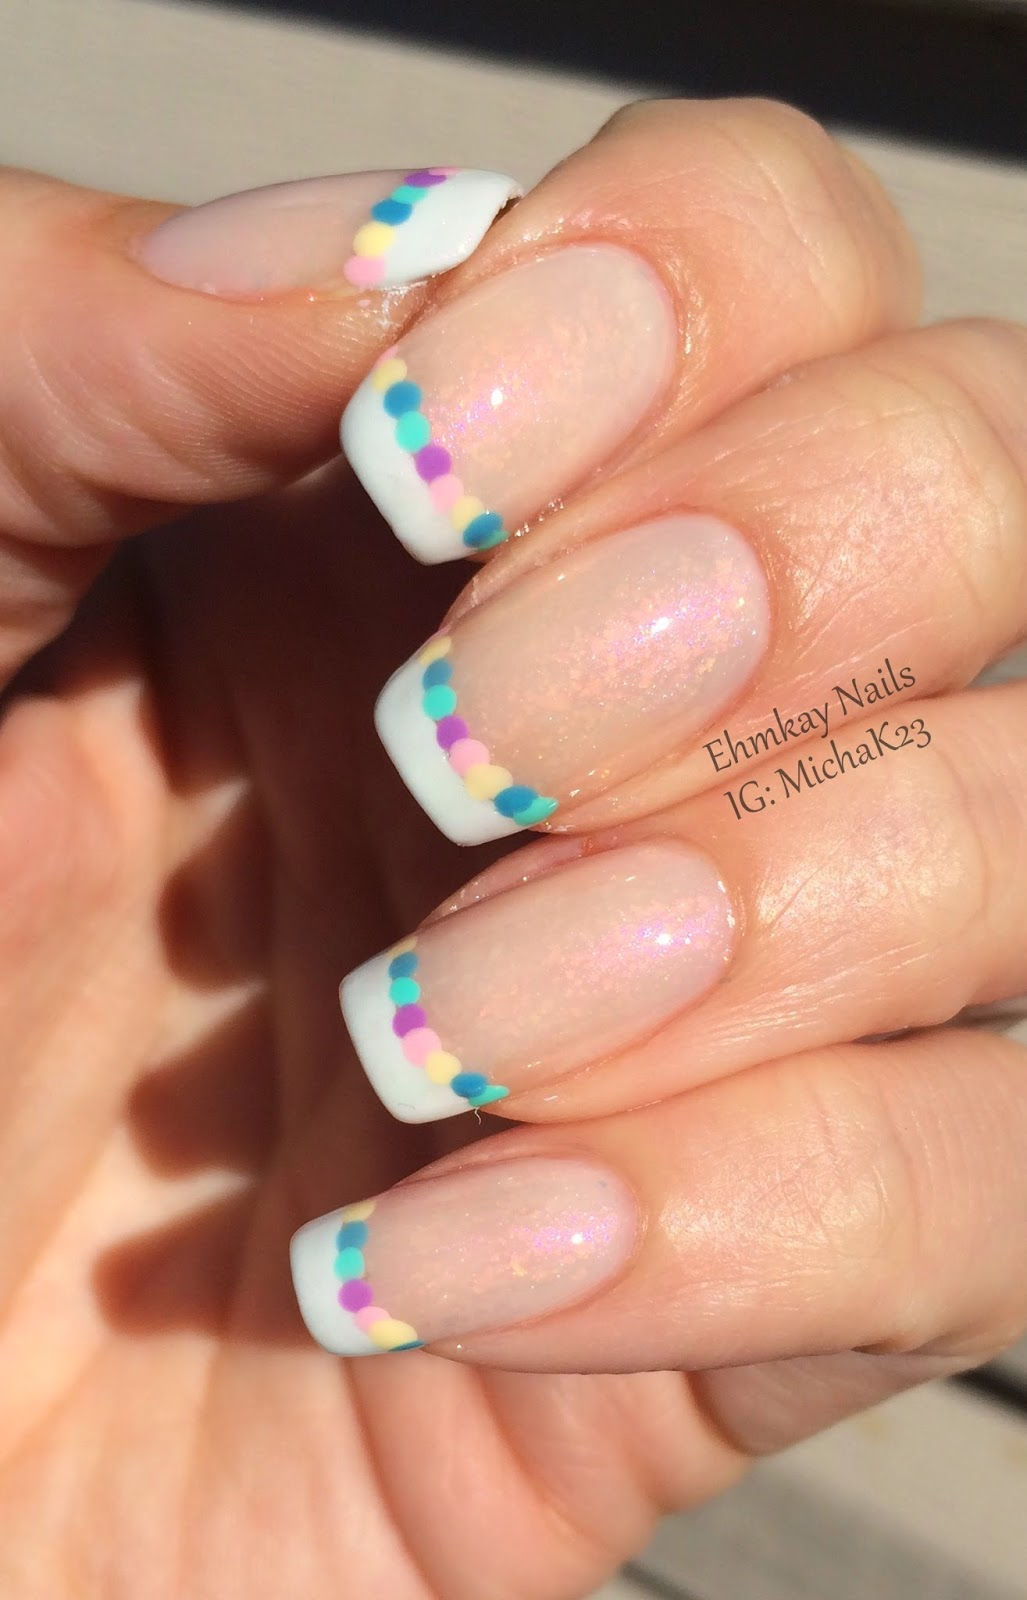 Ehmkay nails easter egg french manicure easter egg french manicure prinsesfo Image collections